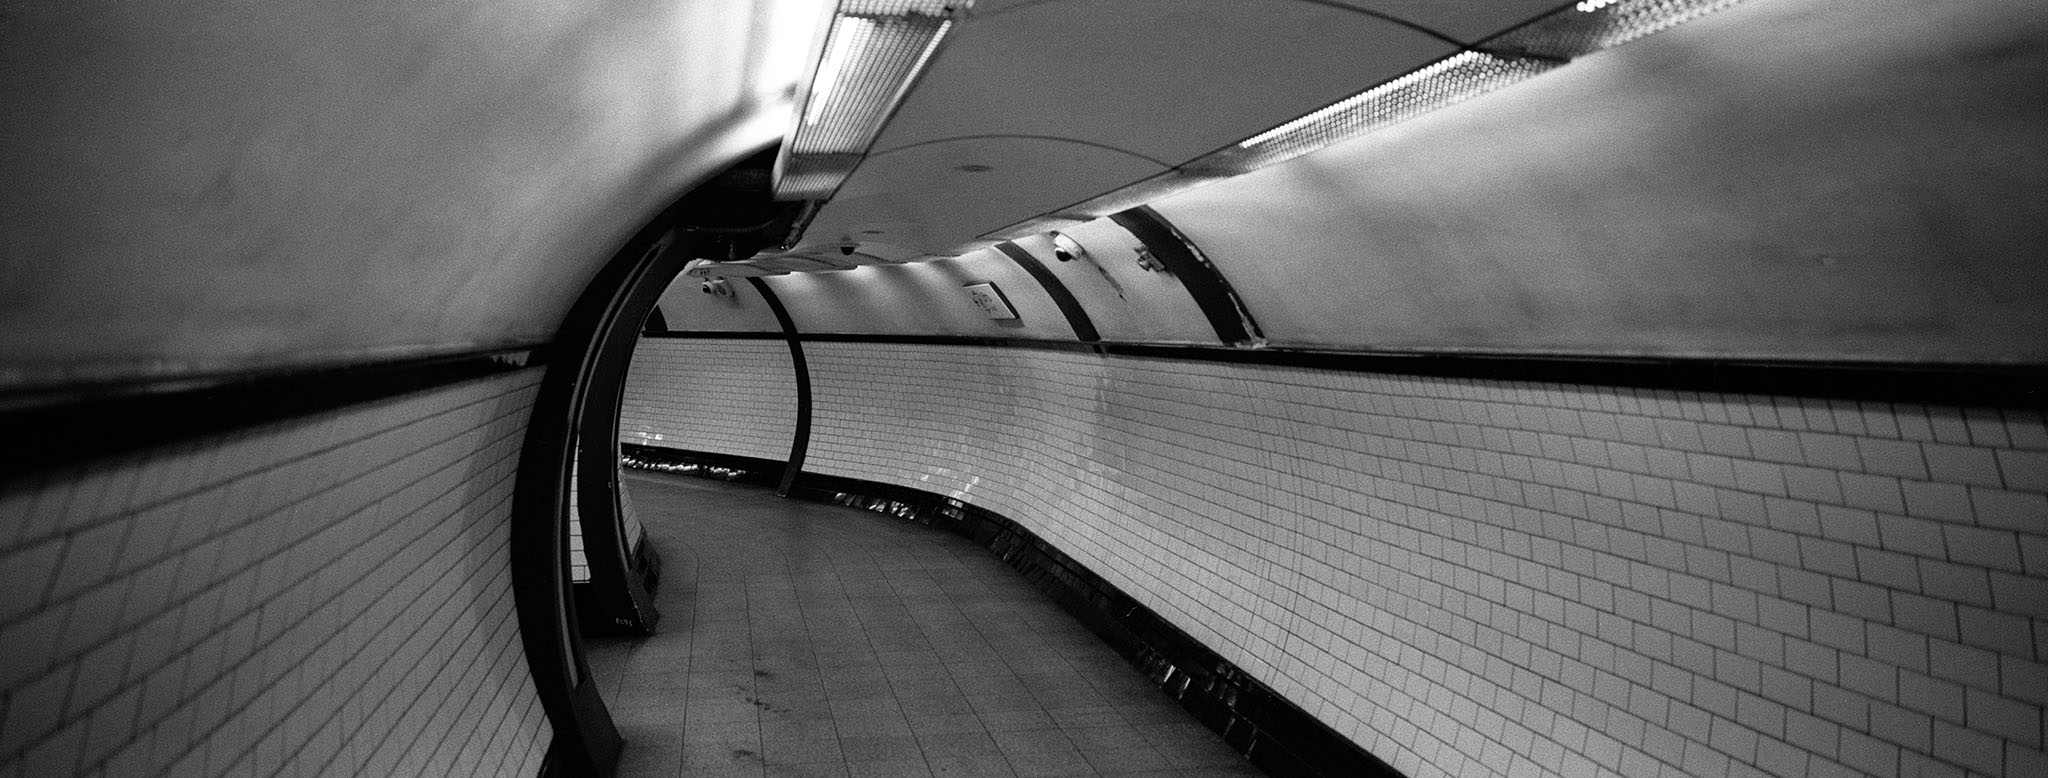 Tube Tunnel Film Pushed to 1600